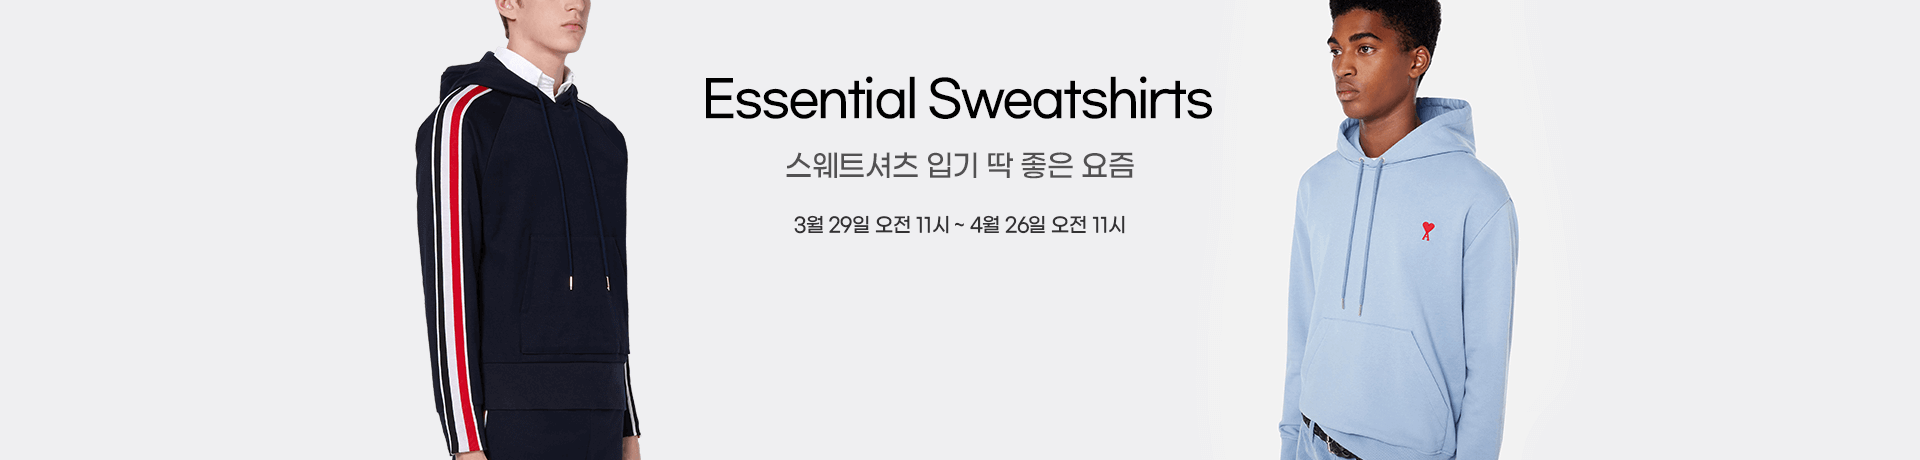 210329_yh_essential-sweatshirt_pc_efeff1